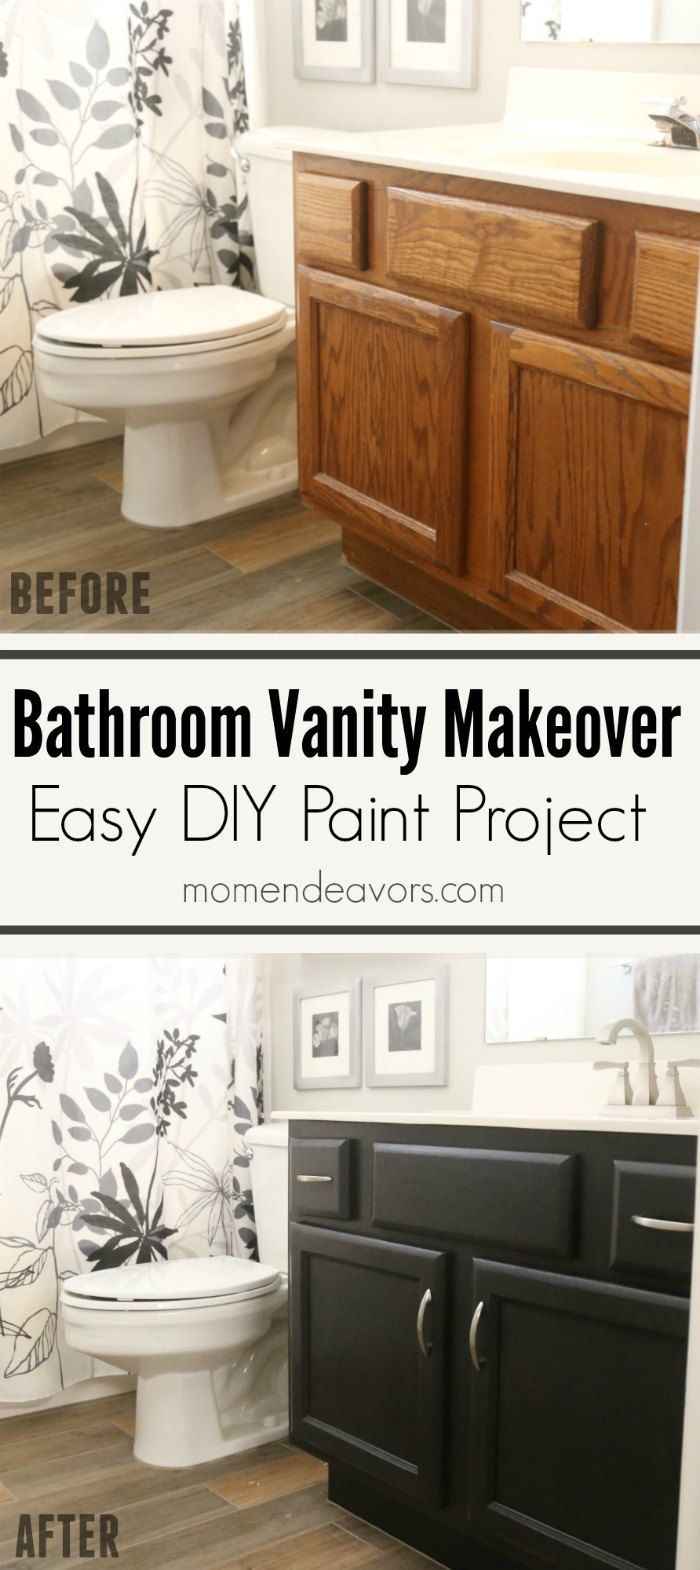 painted bathroom cabinets ideas pin by endeavors on diy home decor 19871